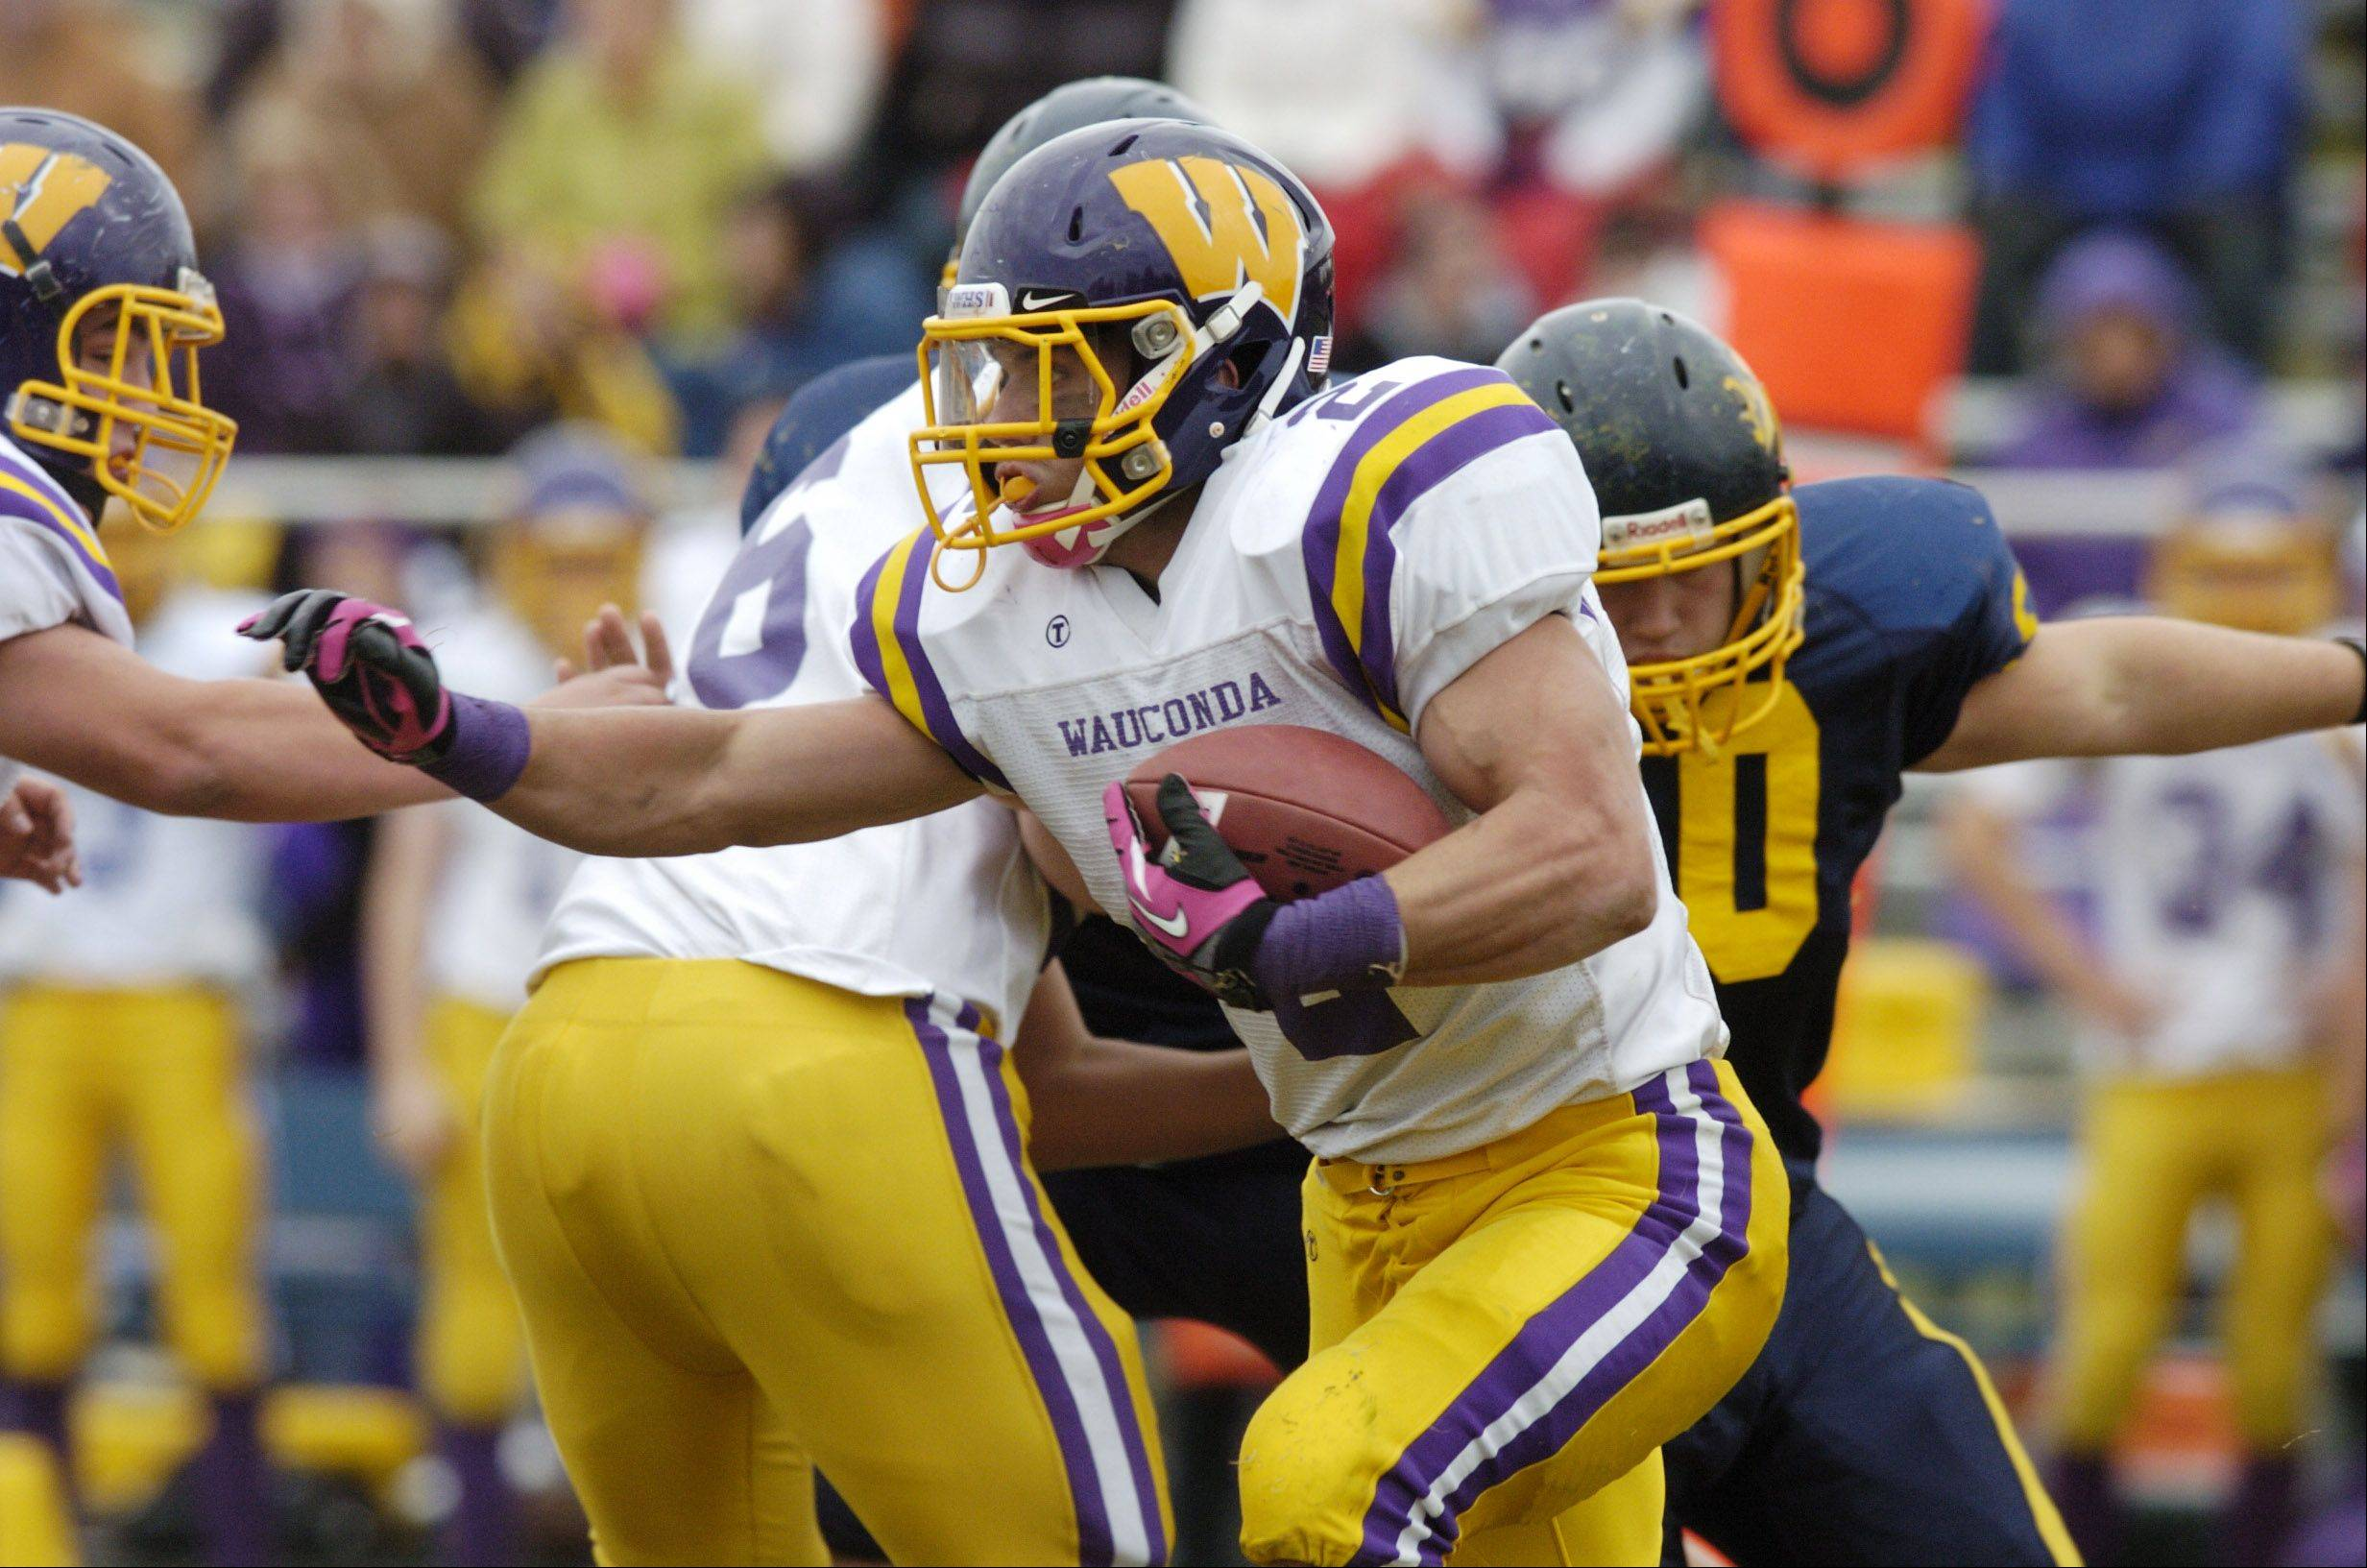 Wauconda's David Starkey carries the ball during Saturday's game against Round Lake.